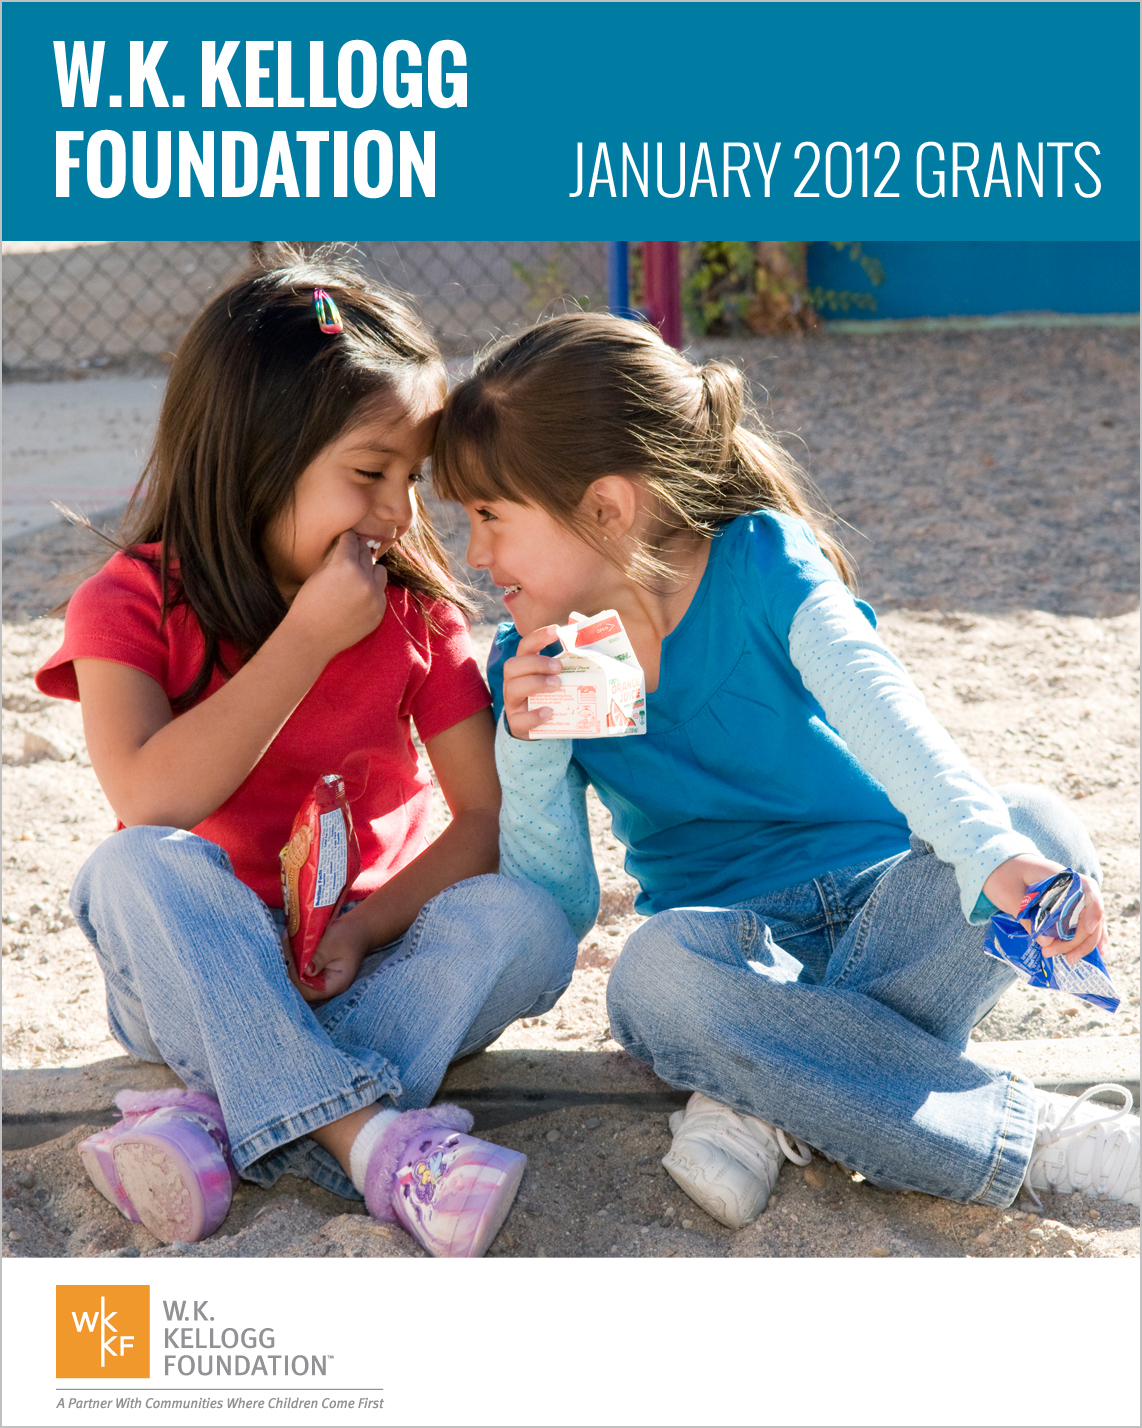 W.K. Kellogg Foundation Grants - January 2012